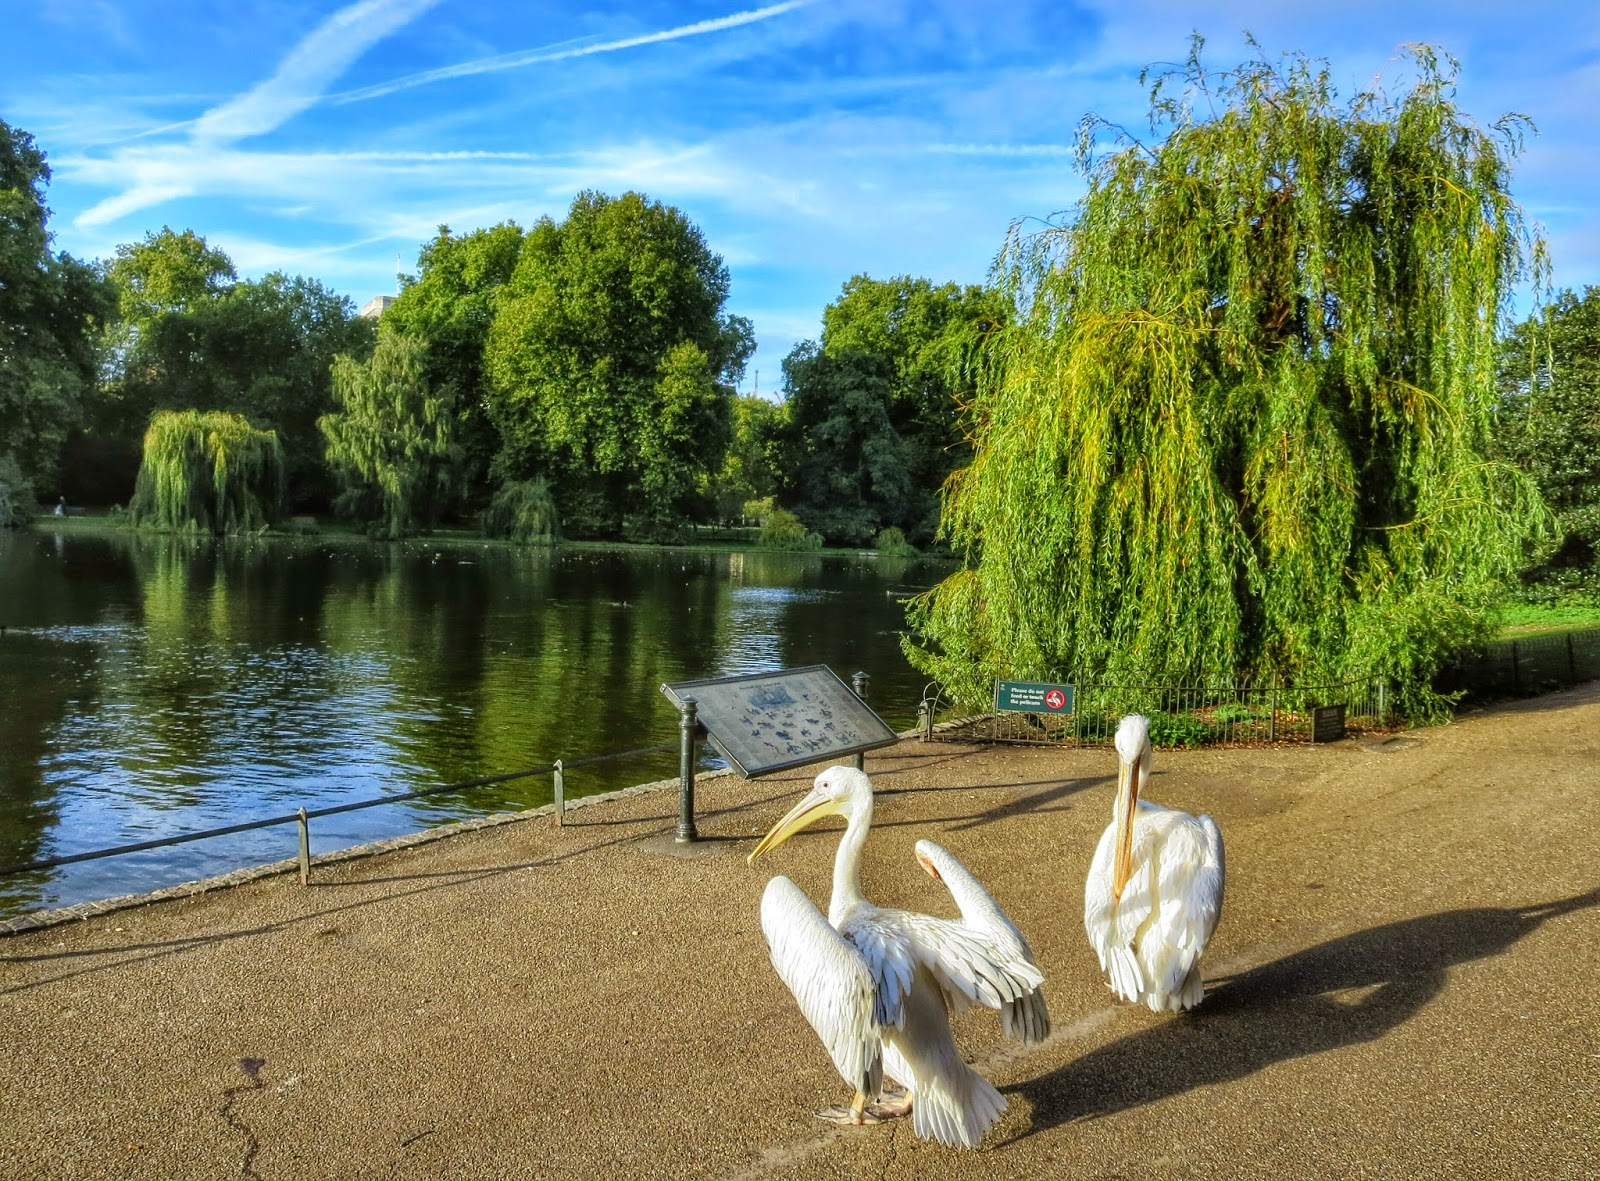 St. James Park Pelicans in London